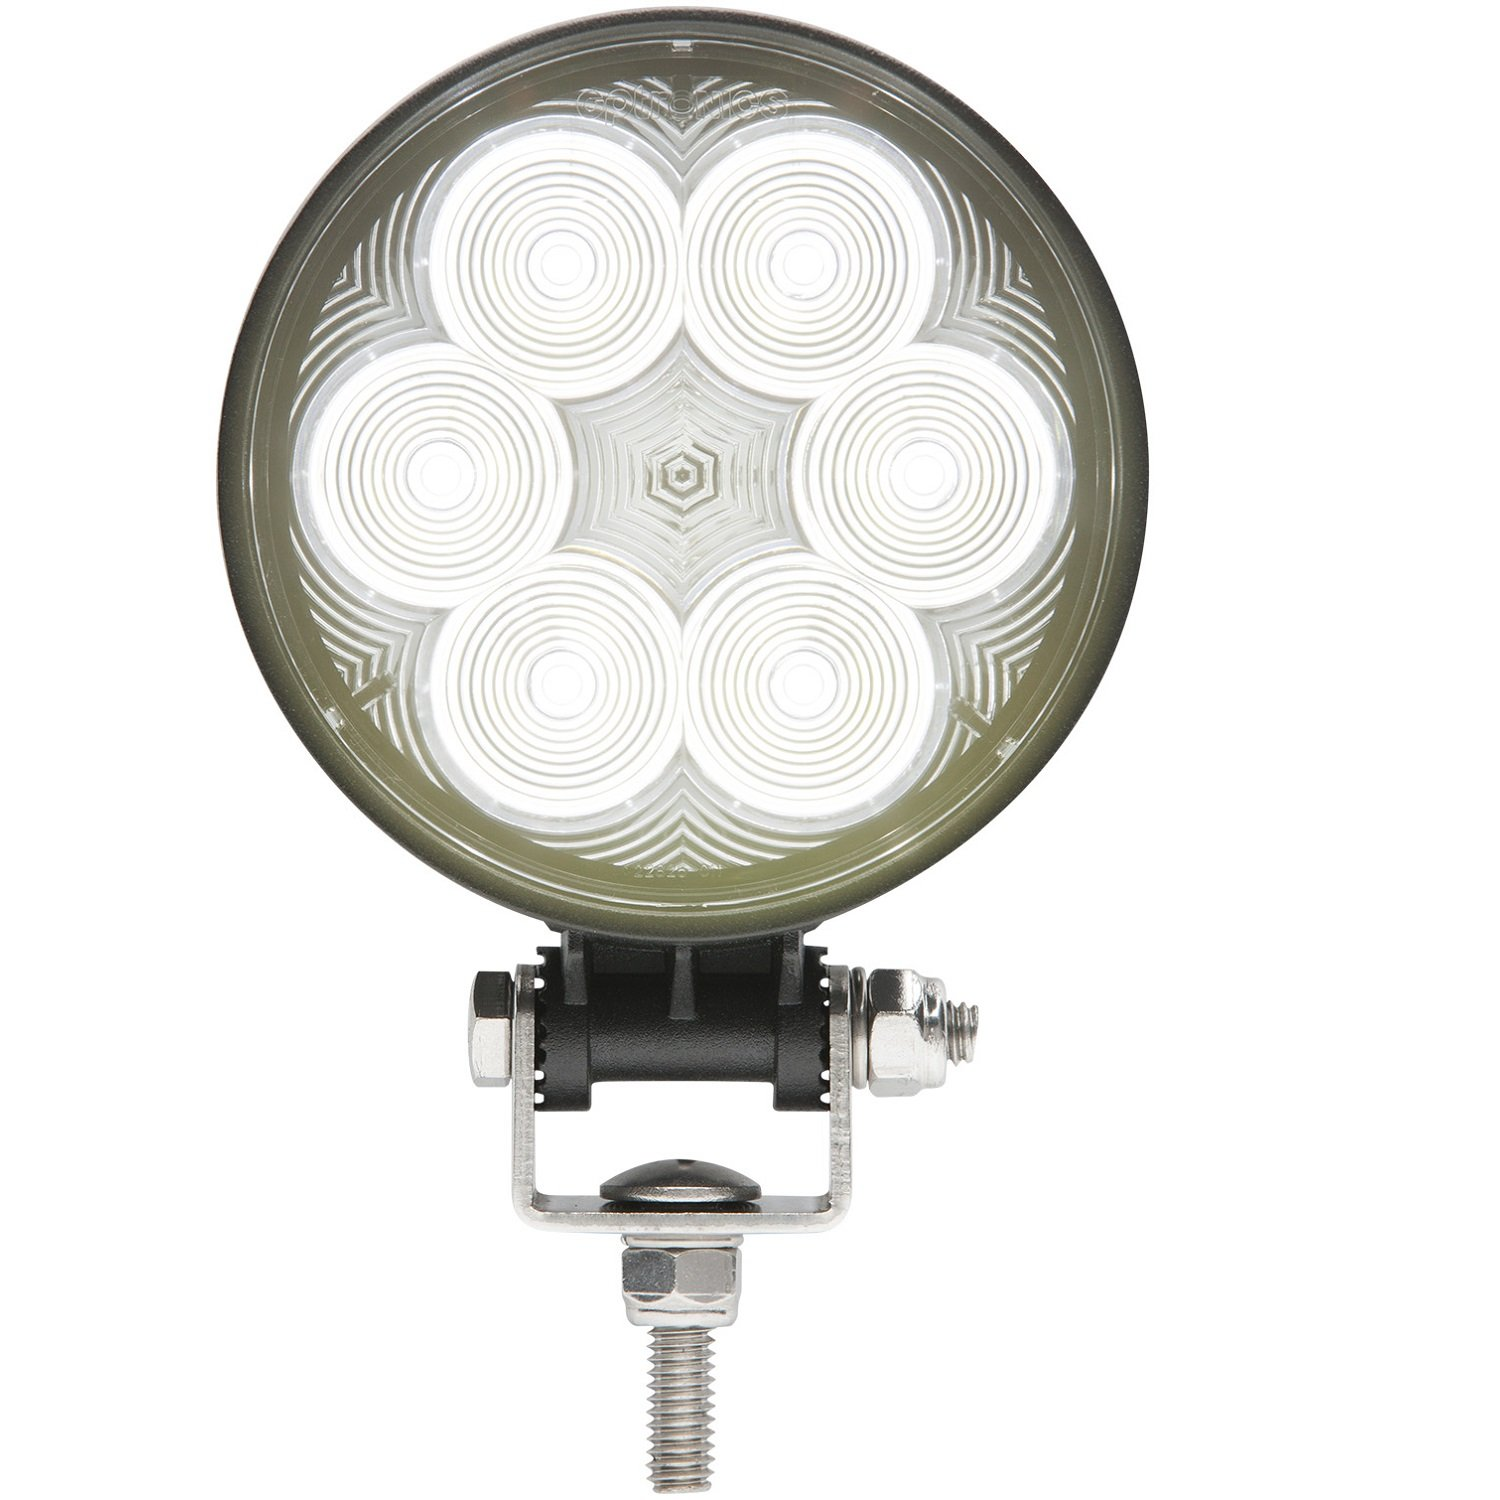 Optronics Opti-Brite LED 6-Diode Round Work Light by Optronics